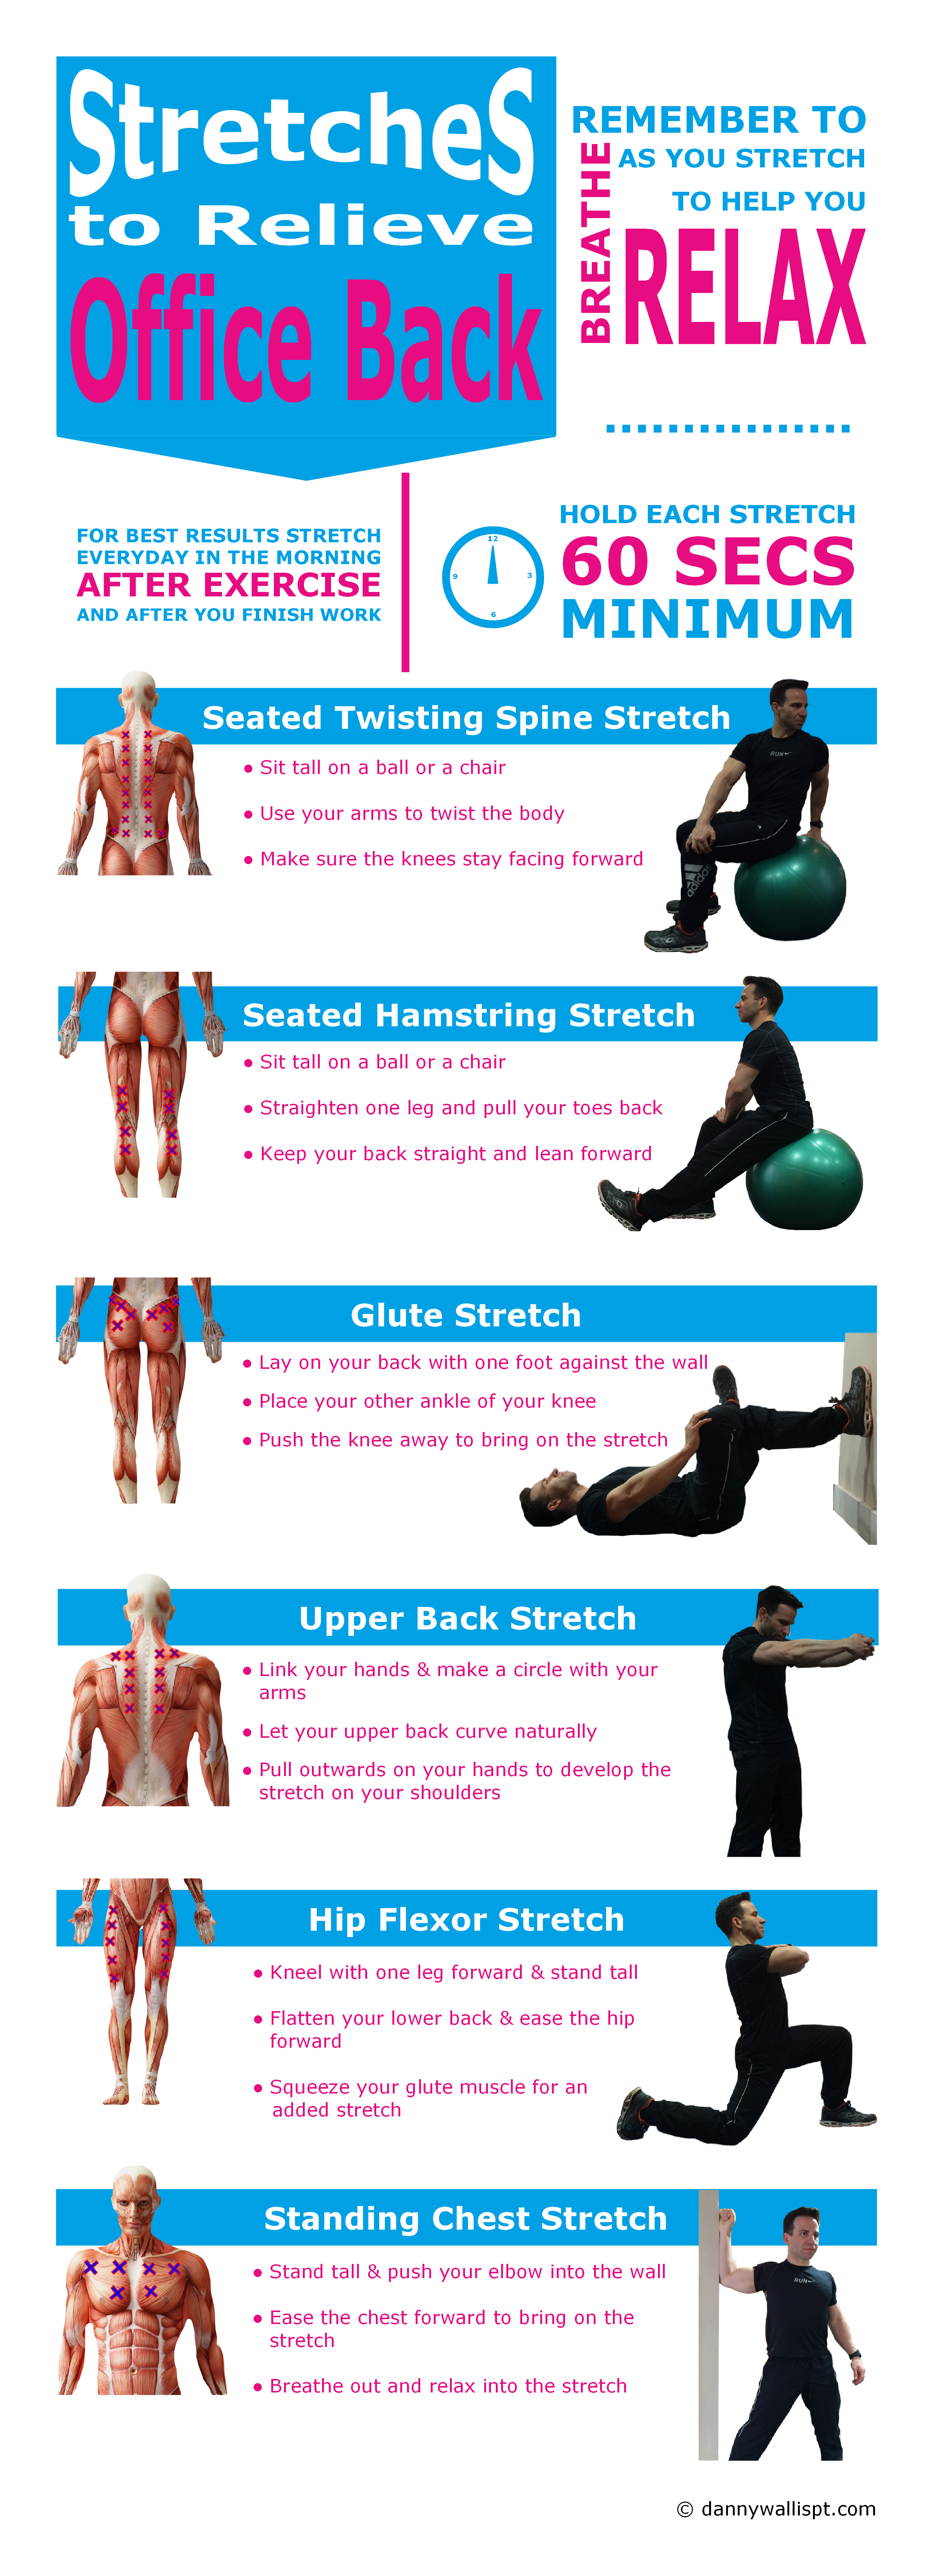 stretches-to-relieve-office-back